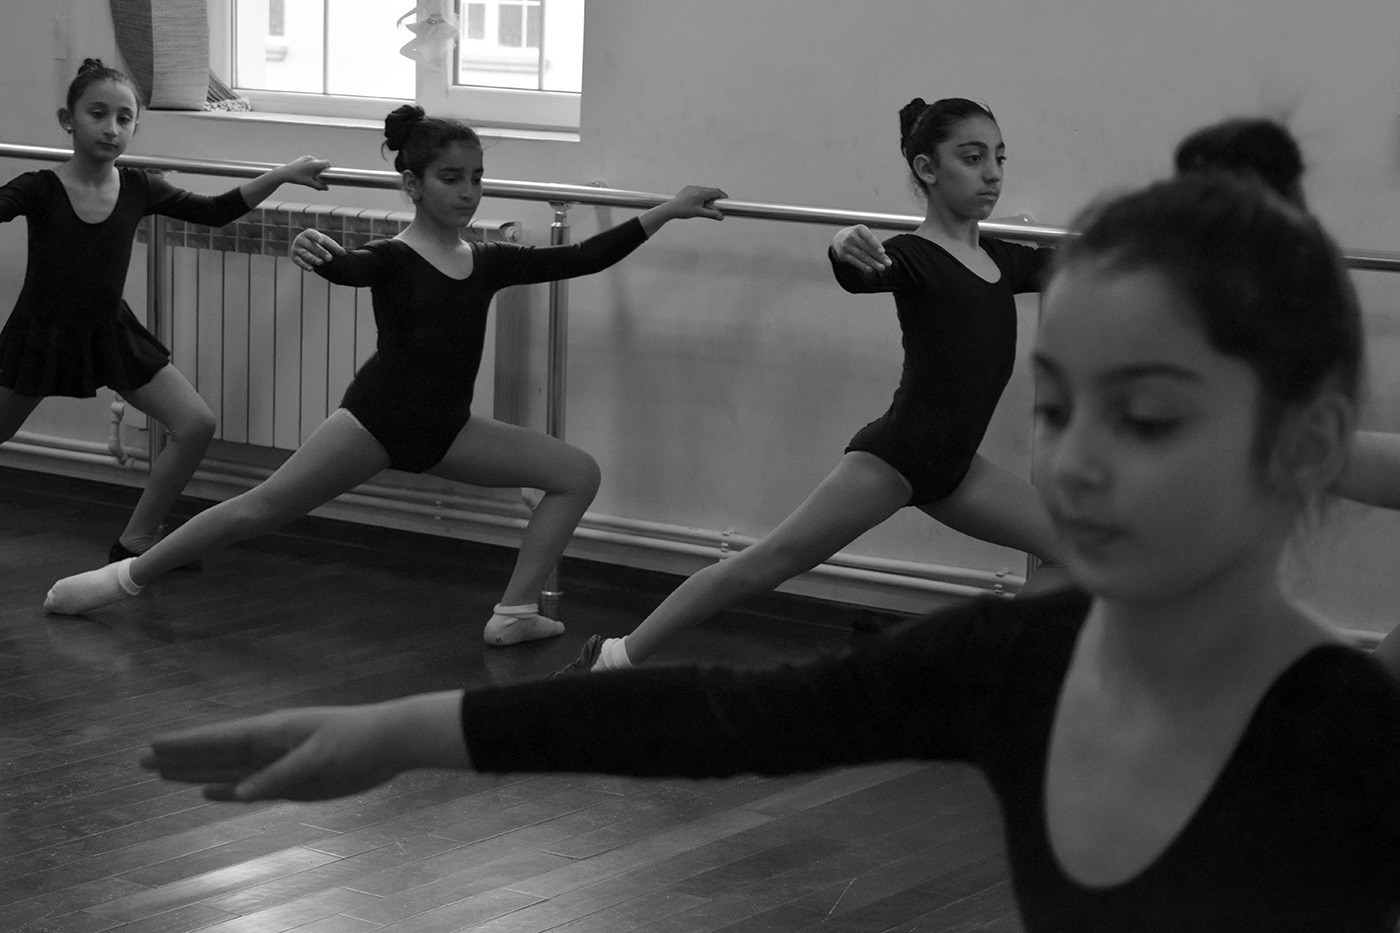 DSC 3169 - Photostory from Gyumri's Ballet School